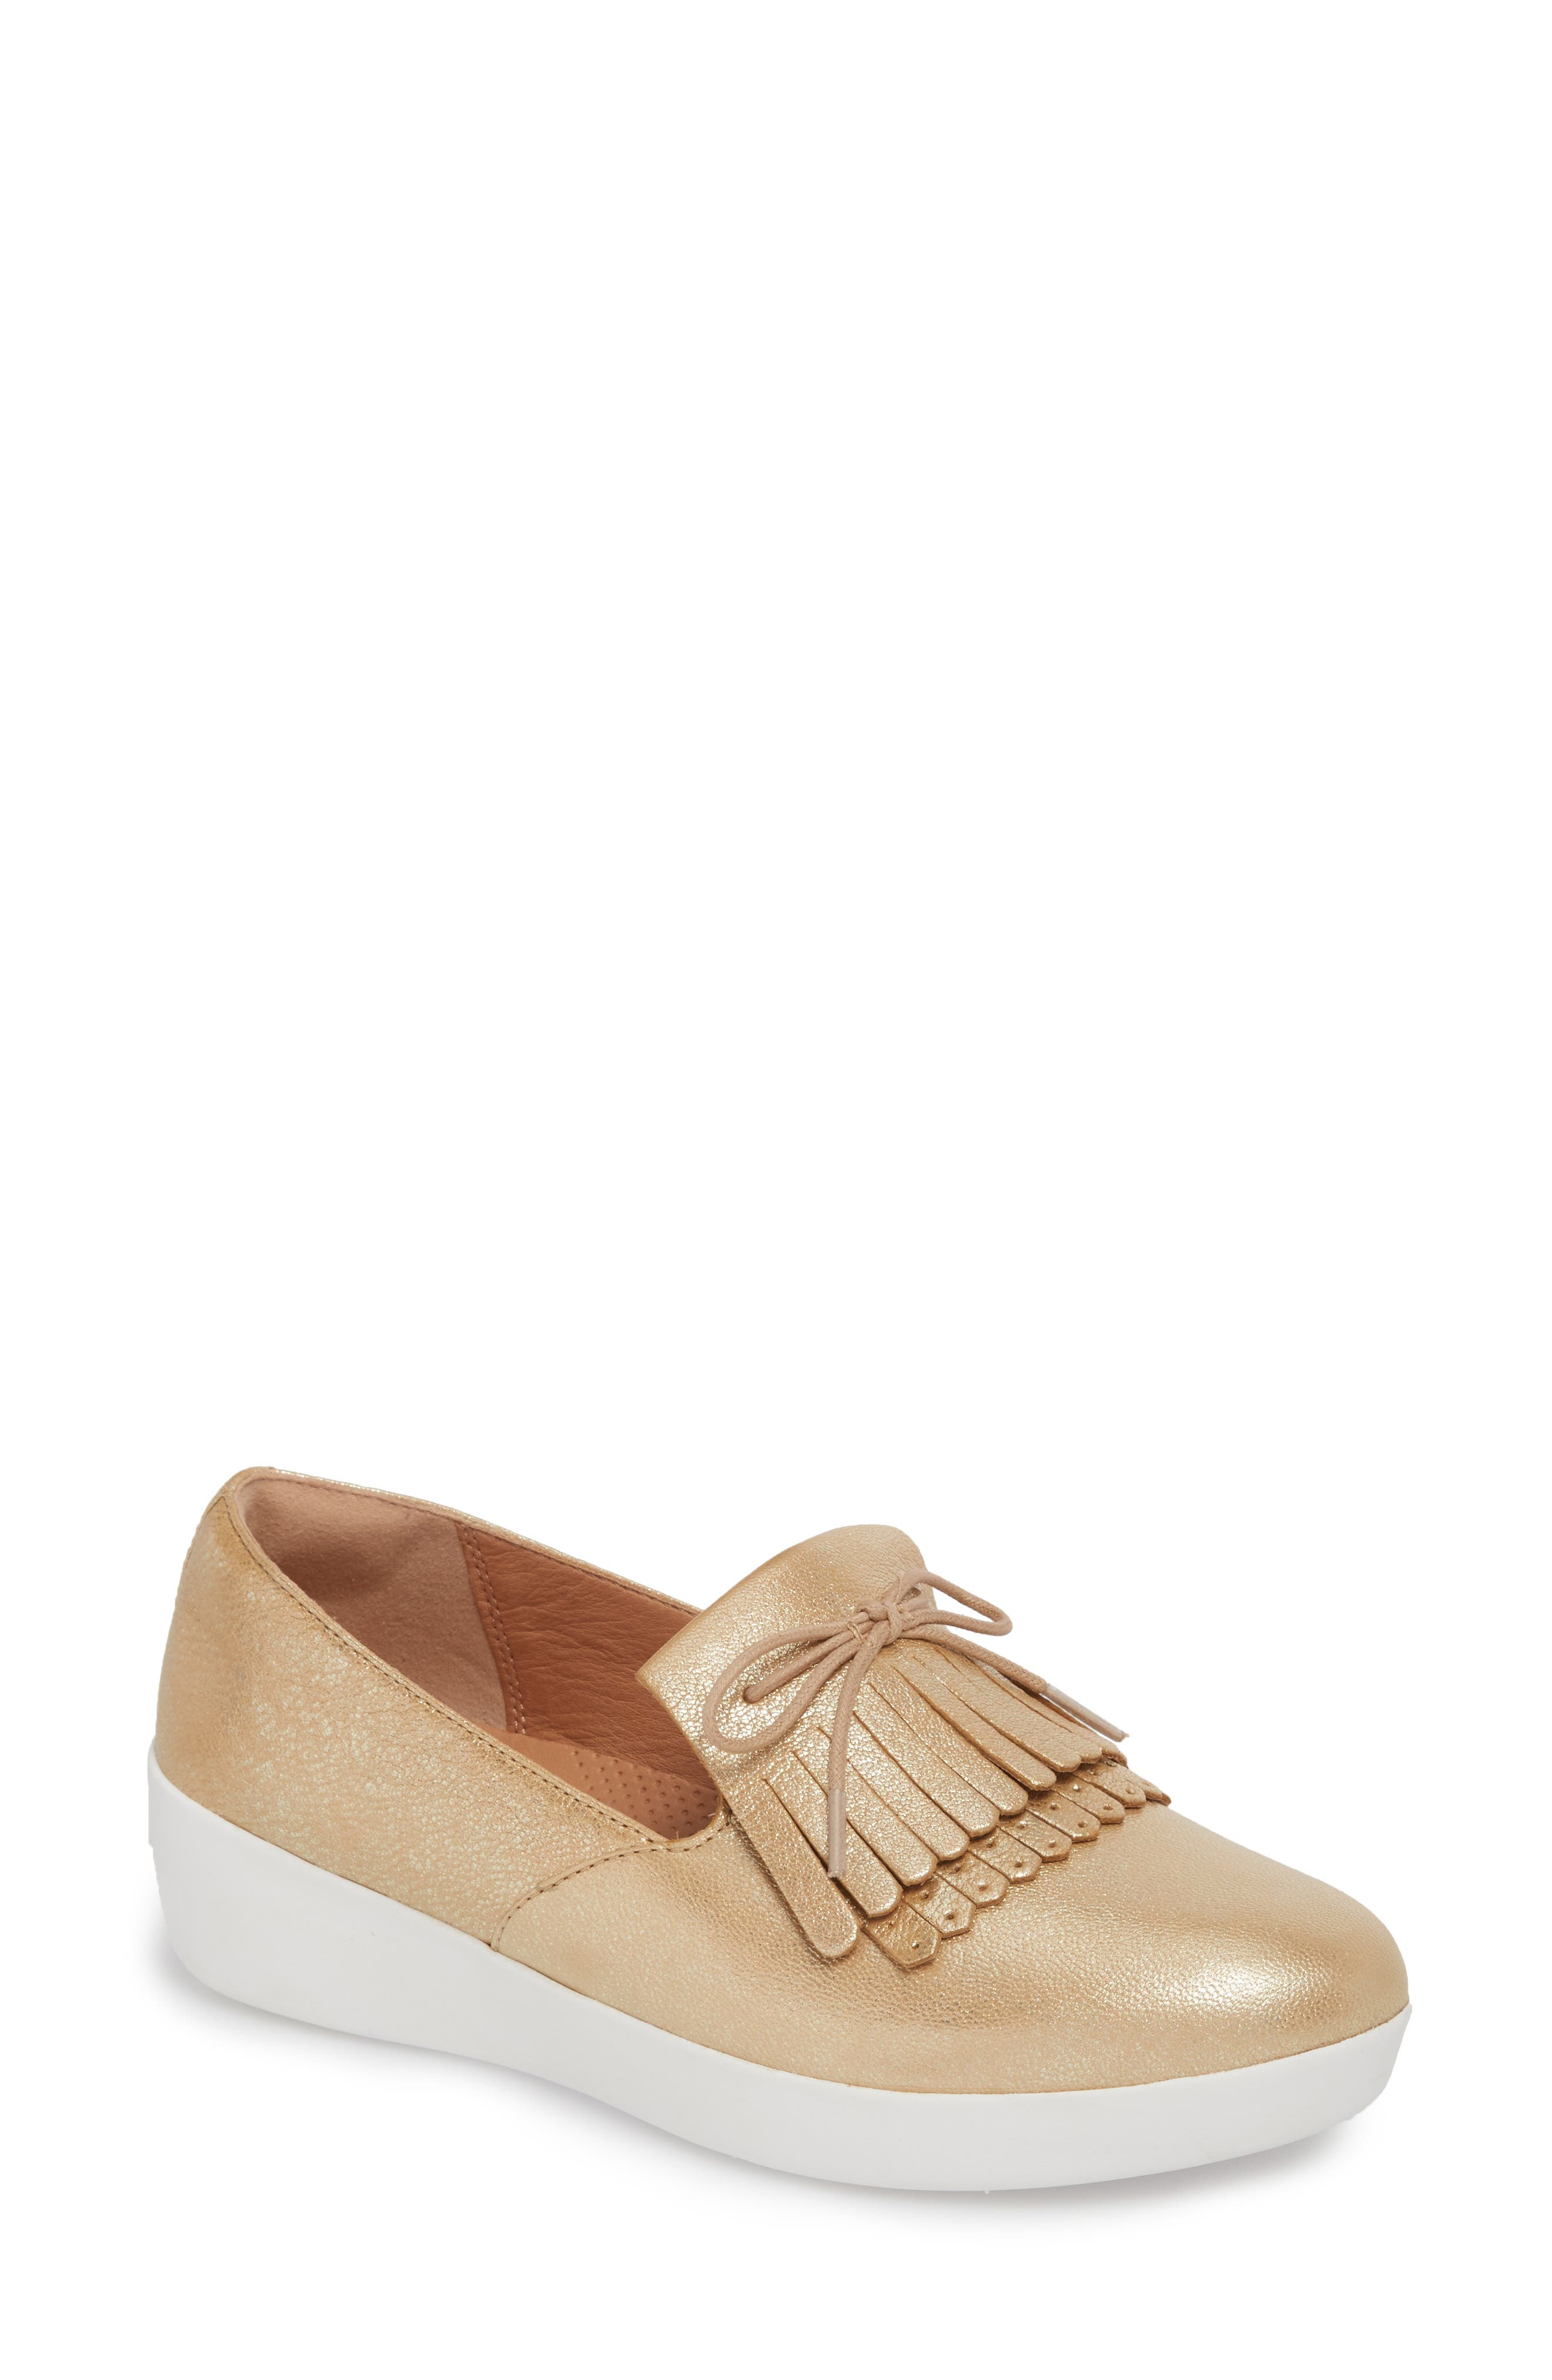 Superskate Fringe Loafer,                         Main,                         color, Metallic Gold Leather